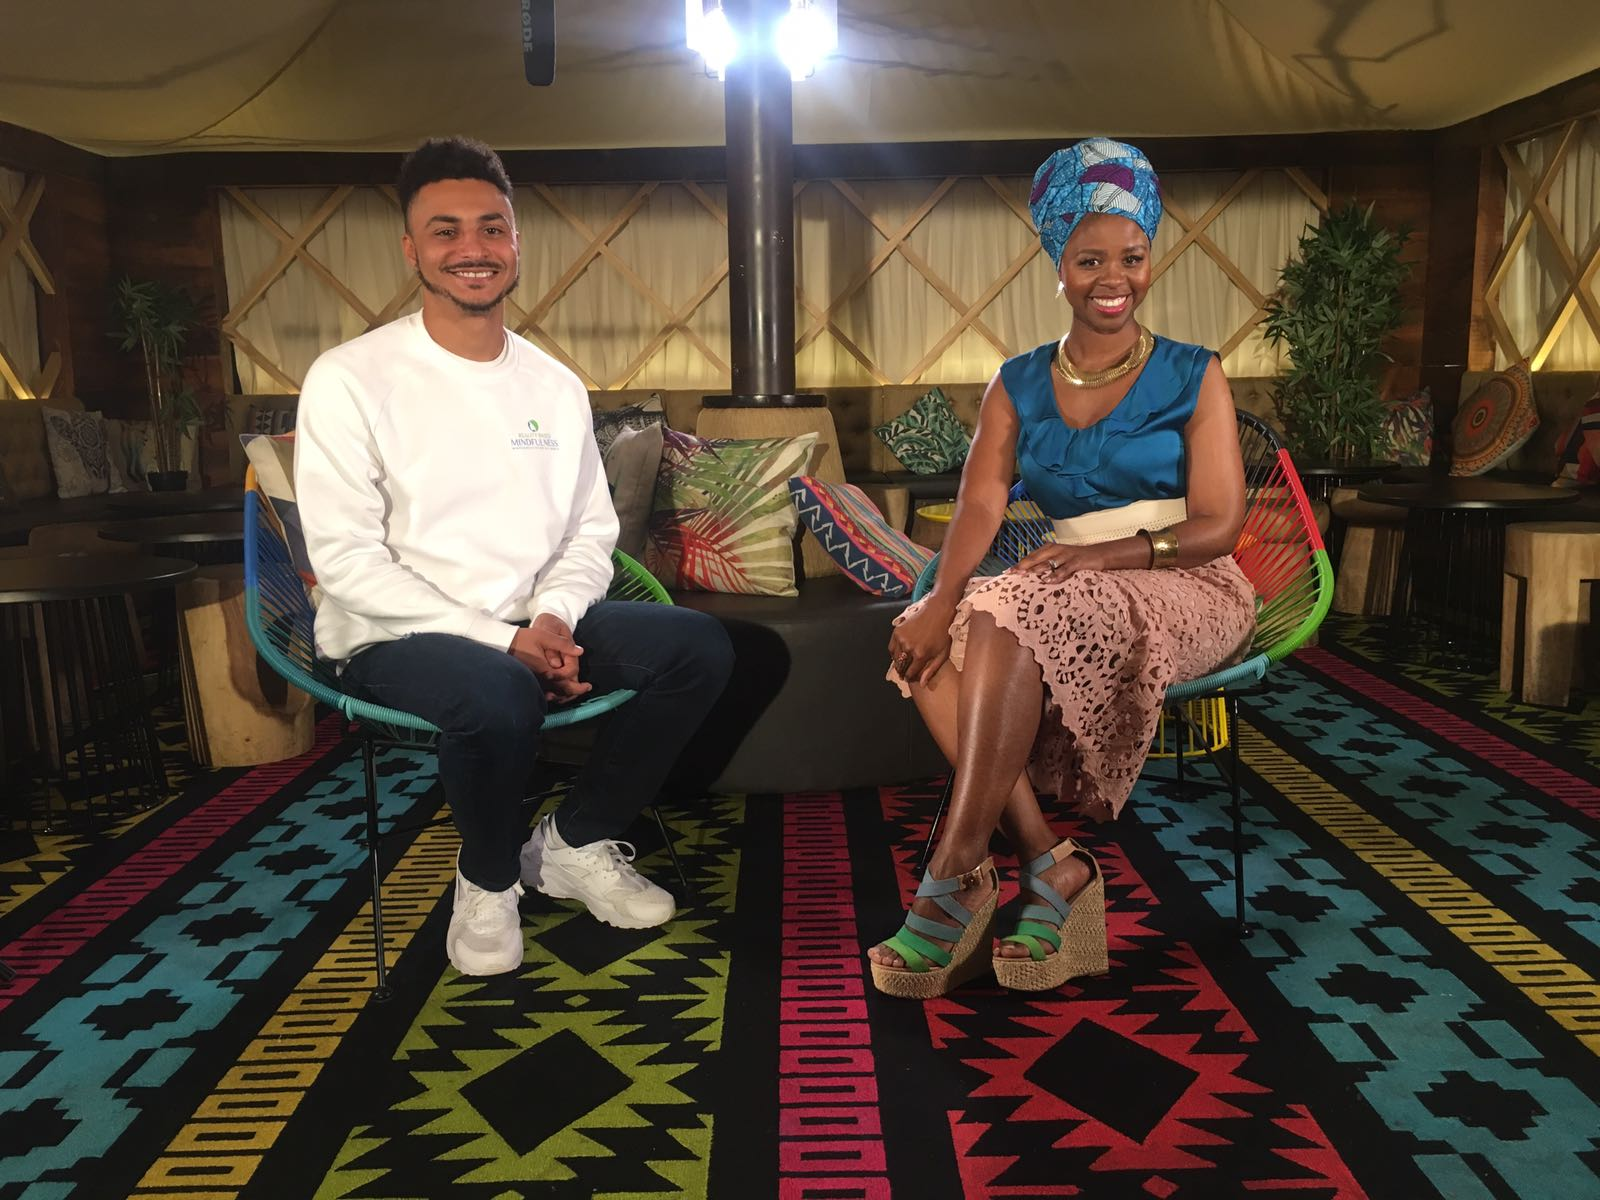 Watch our interview with Coco Nkrumah